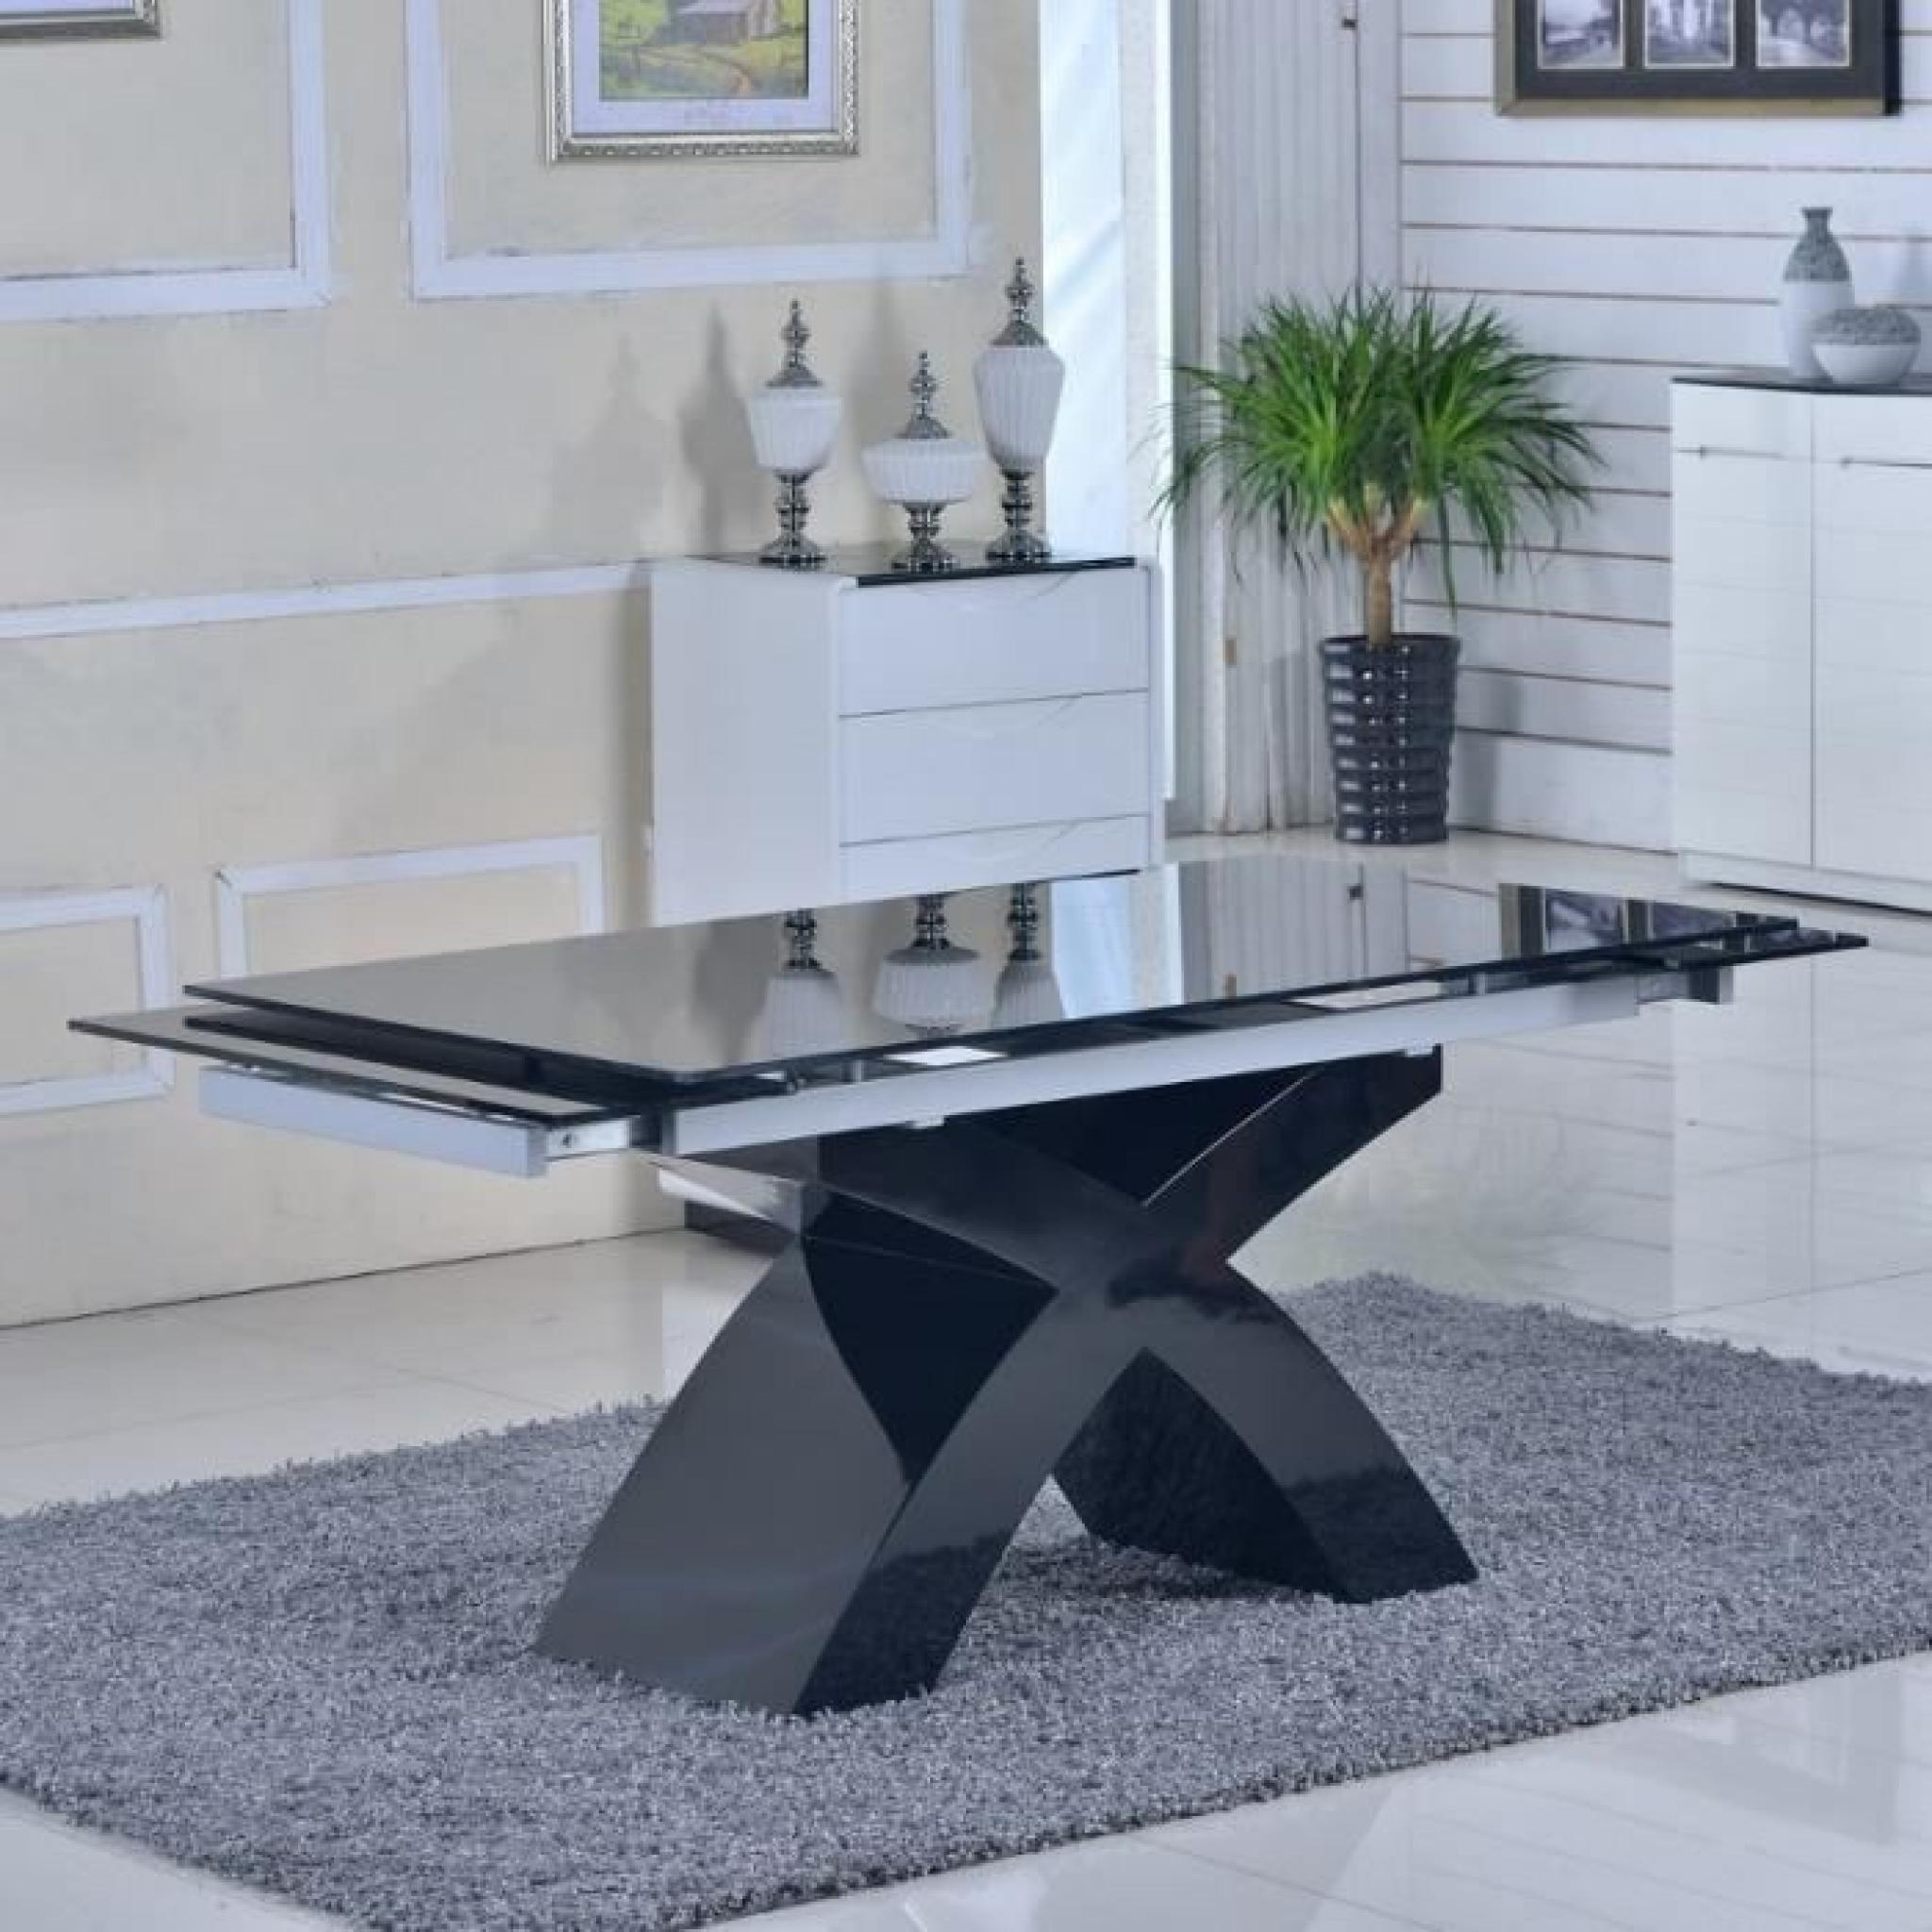 Table Carrée En Verre Extensible: Table En Verre Noir à Rallonges Extensible Elix